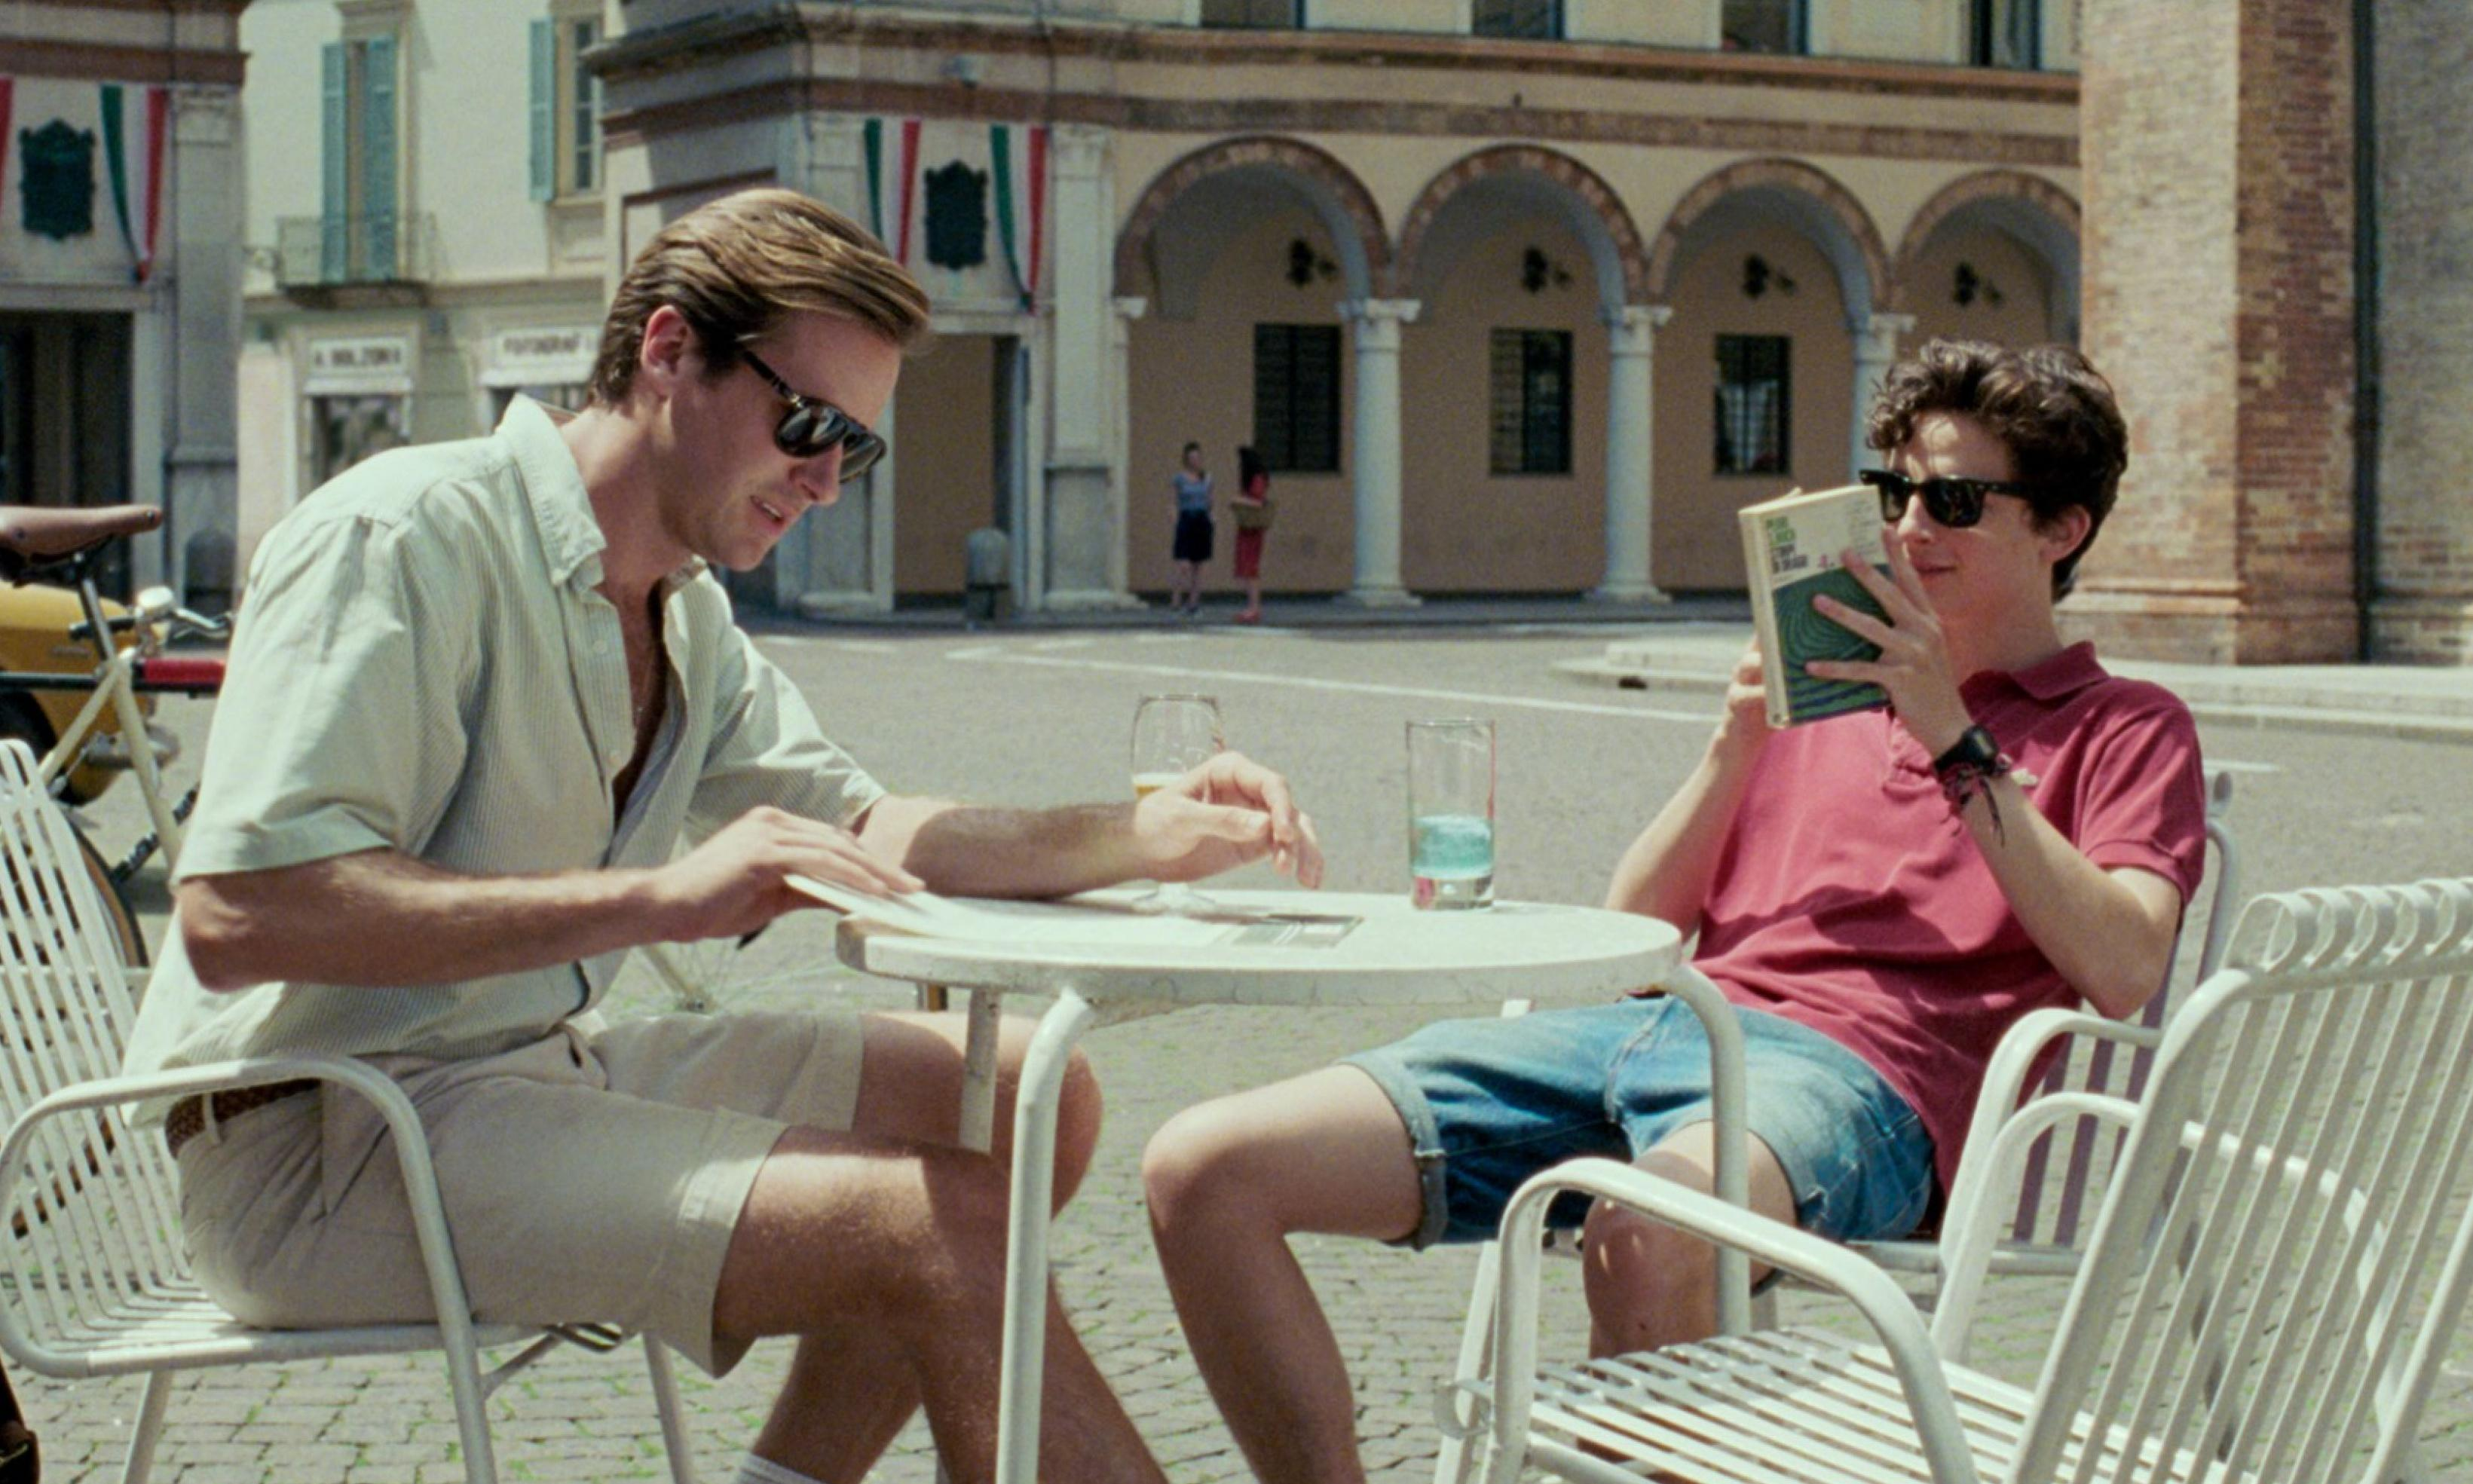 Call Me By Your Name's Luca Guadagnino on cinema's love affair with fashion